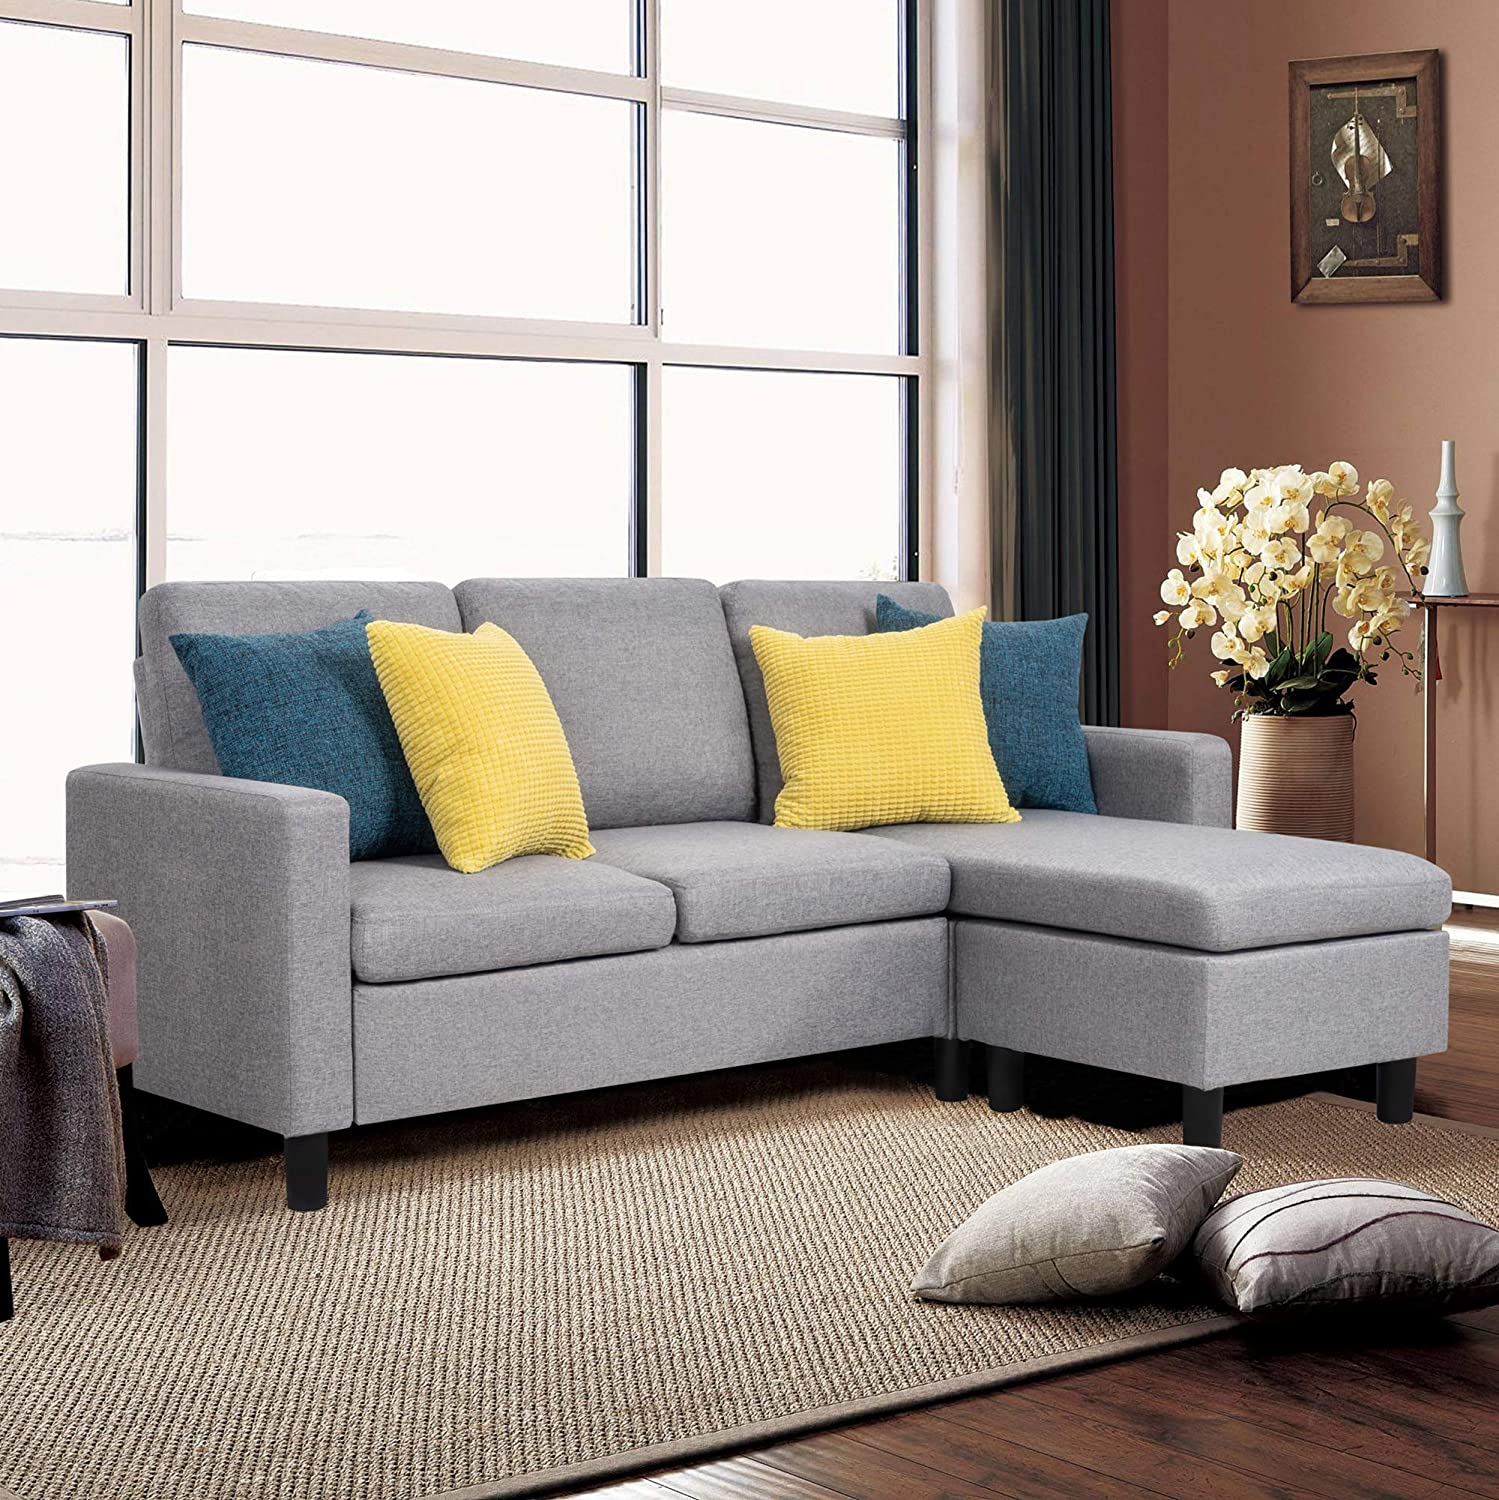 JY QAQA Sectional Sofa Couch Convertible Chaise Lounge, Modern Sofa Set for  Living Room, L-Shaped Couch with Linen Fabric for Small Space, Grey